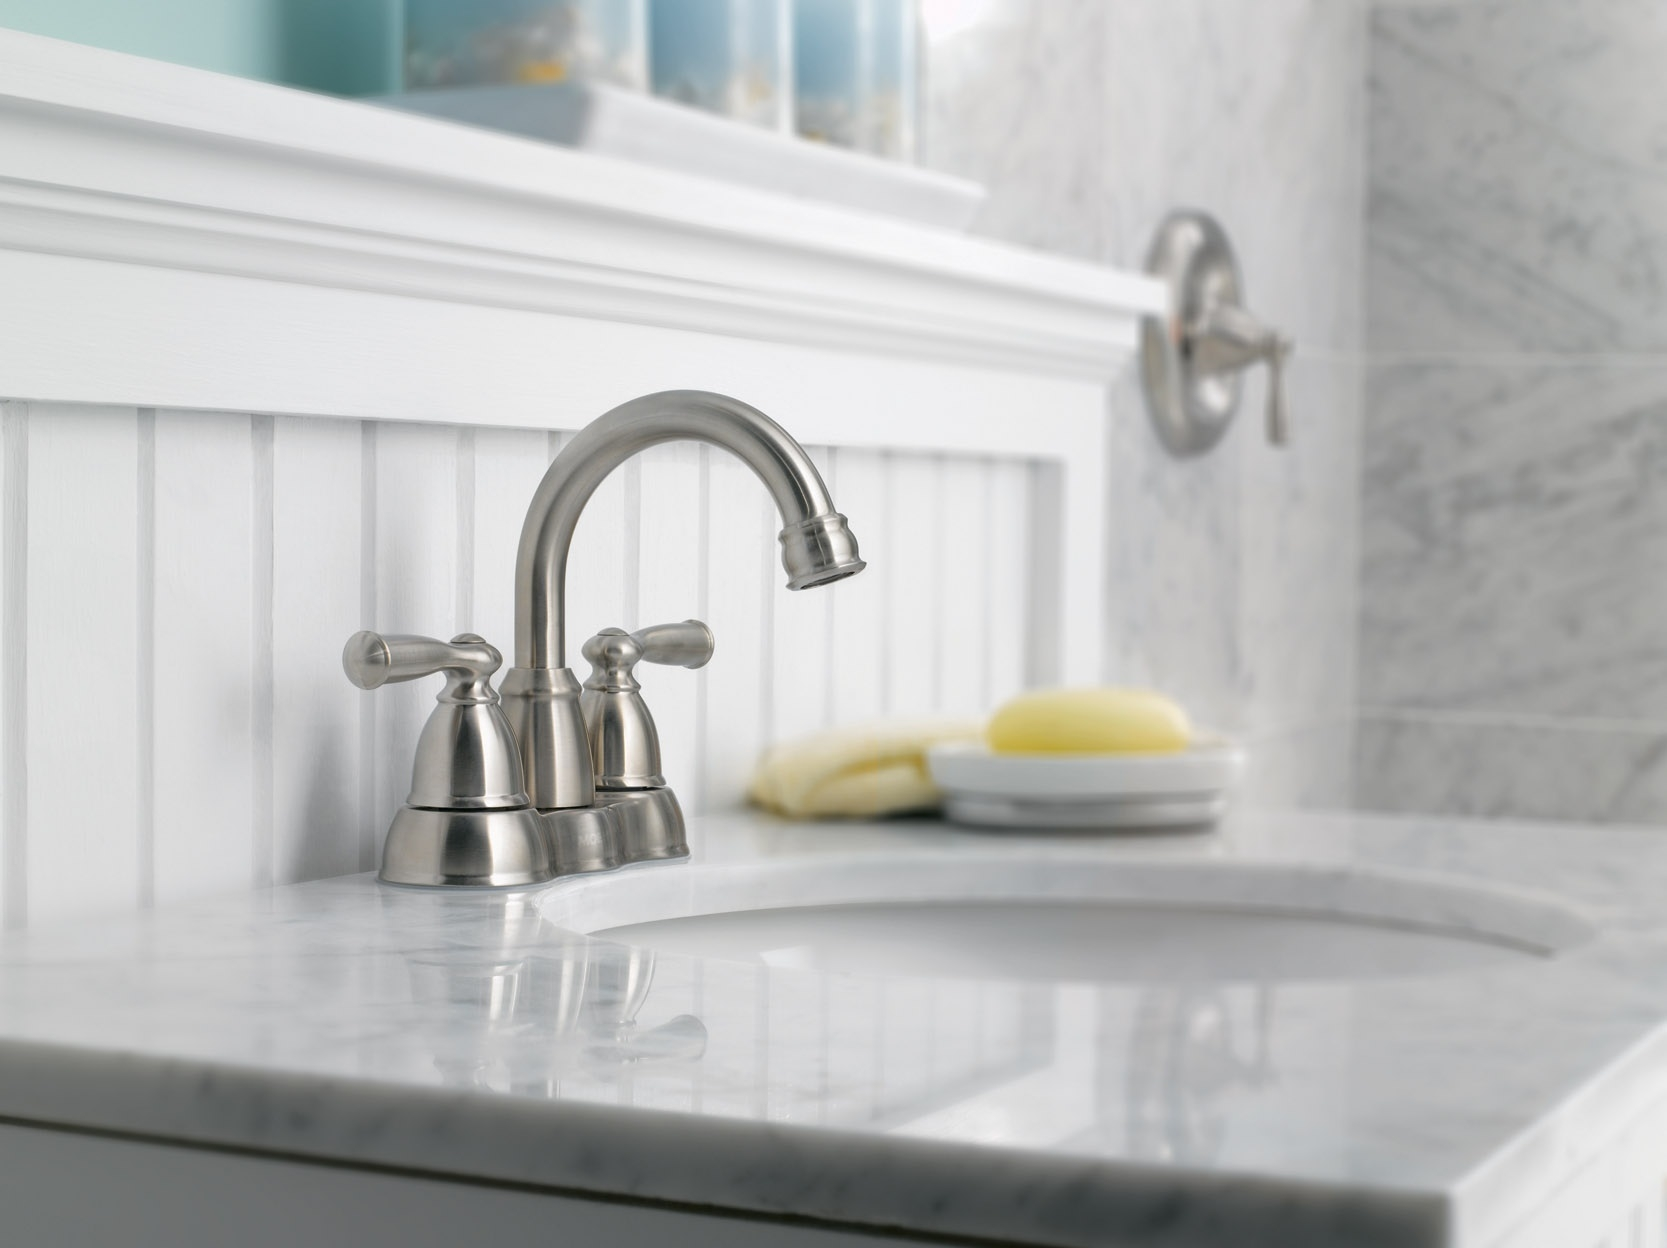 Ideas, moen caldwell bathroom faucet brushed nickel moen caldwell bathroom faucet brushed nickel bathroom outstanding moen banbury for bathroom and kitchen 1667 x 1248  .